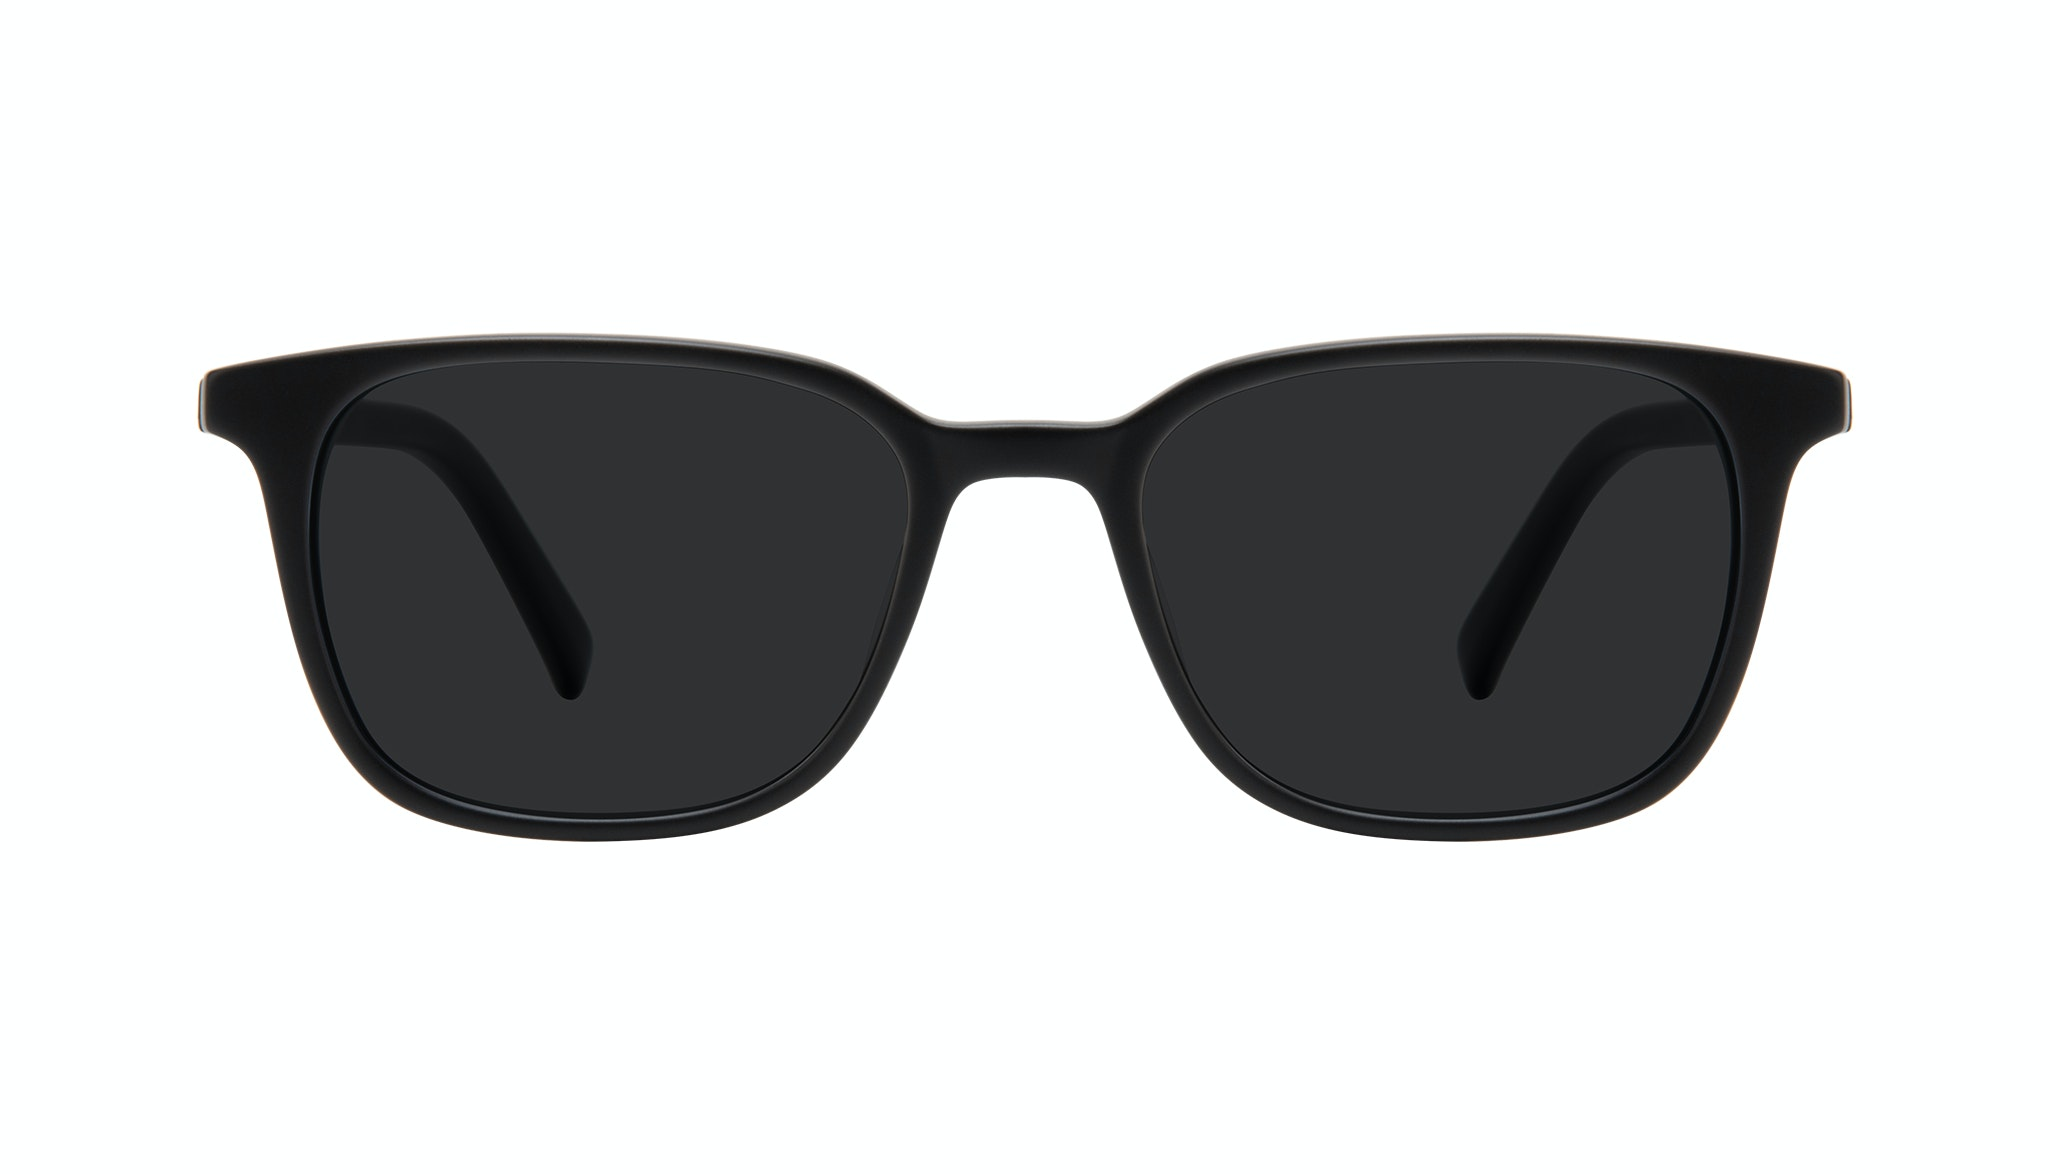 Affordable Fashion Glasses Square Sunglasses Men Choice Black Matte